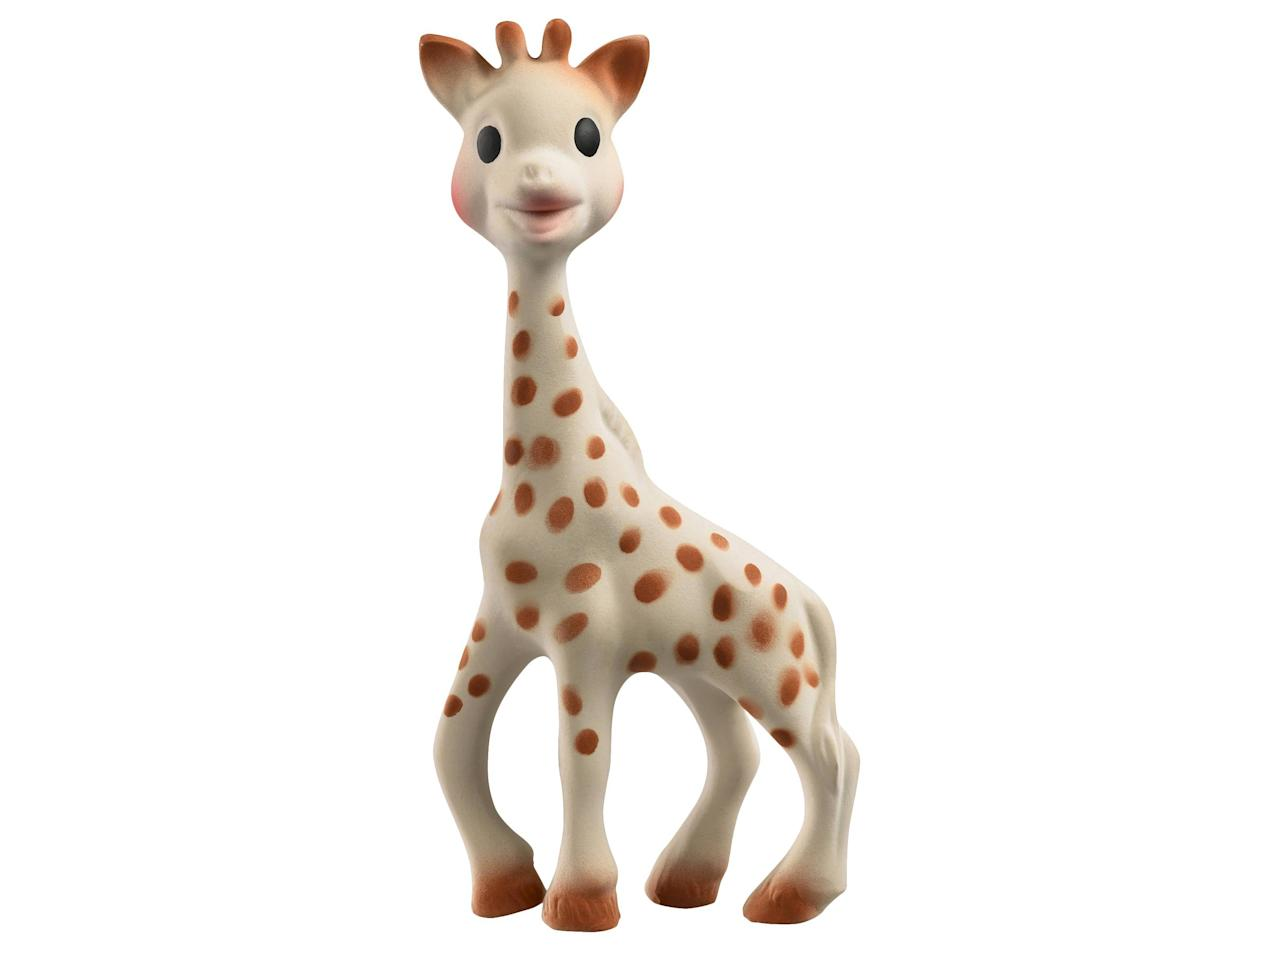 """<p>""""You've probably heard of Sophie the Giraffe in some form or another. This toy is SO popular! I don't know why babies love it so much, but they do.""""</p><p>Buy it <a rel=""""nofollow"""" href=""""https://www.target.com/p/sophie-la-girafe-teether/-/A-15286048"""">here</a> for $25.</p>"""